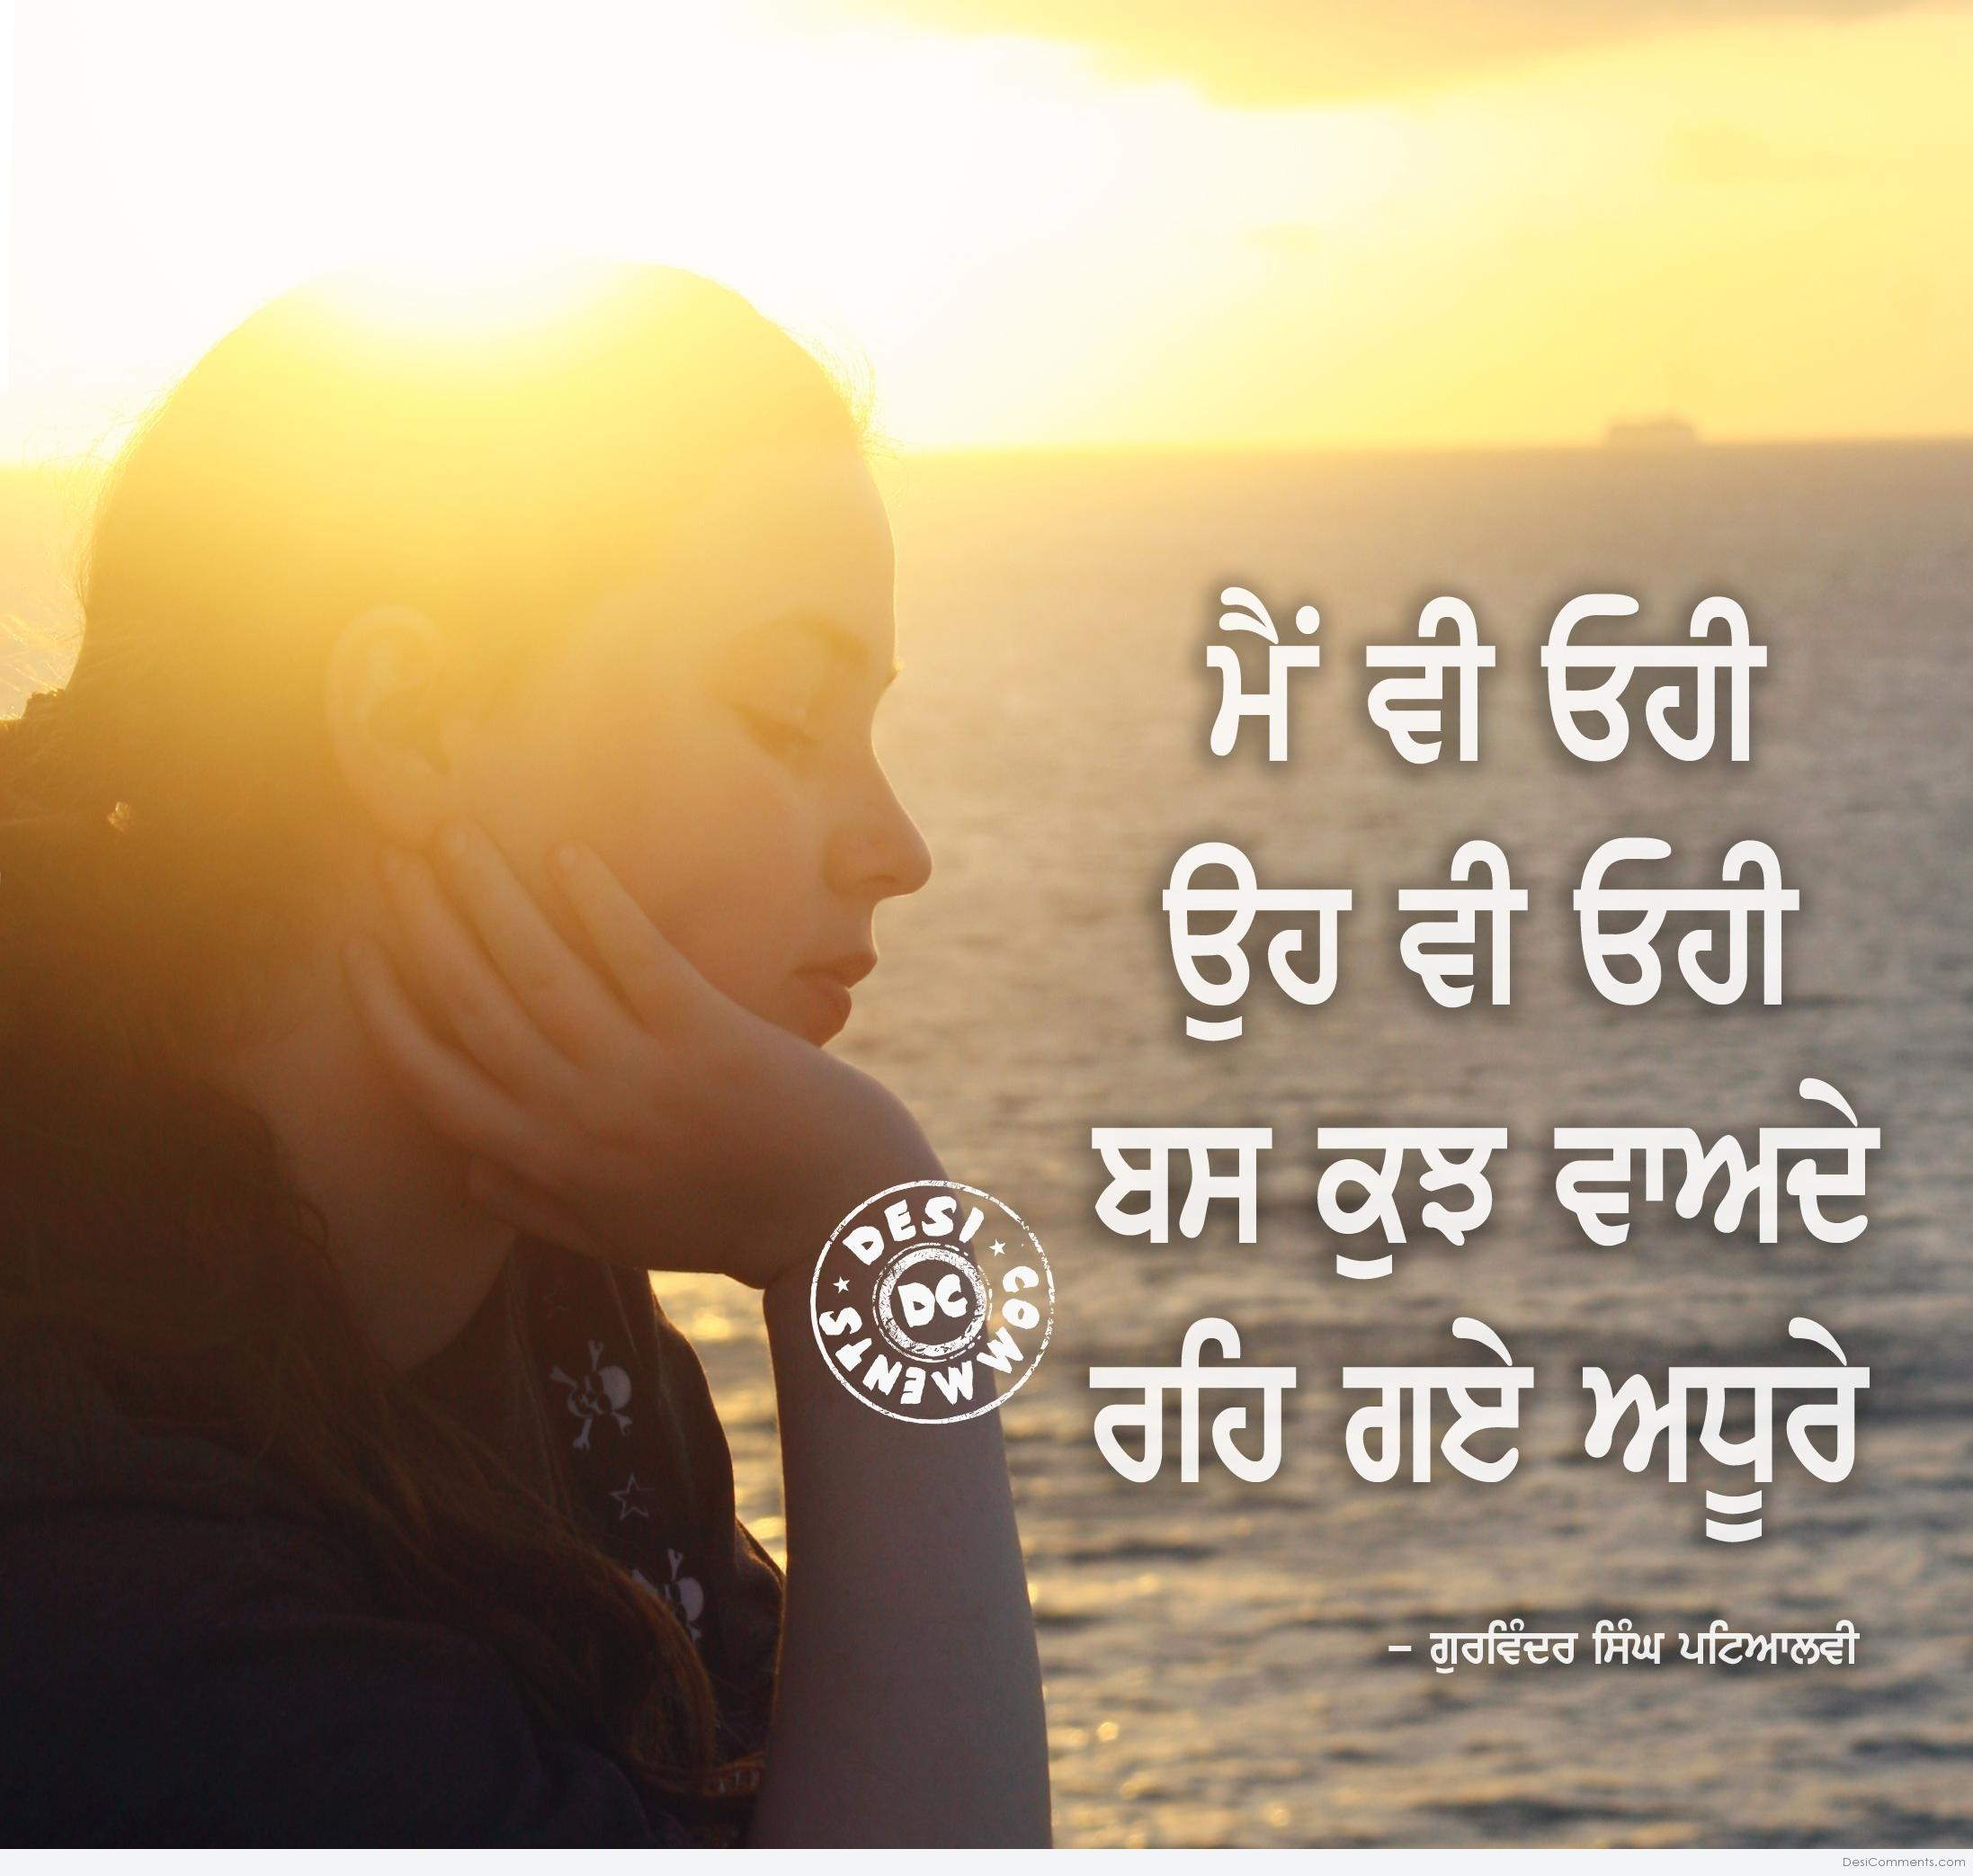 Sad Boy Alone Quotes: Punjabi Sad Pictures, Images, Graphics For Facebook, Whatsapp